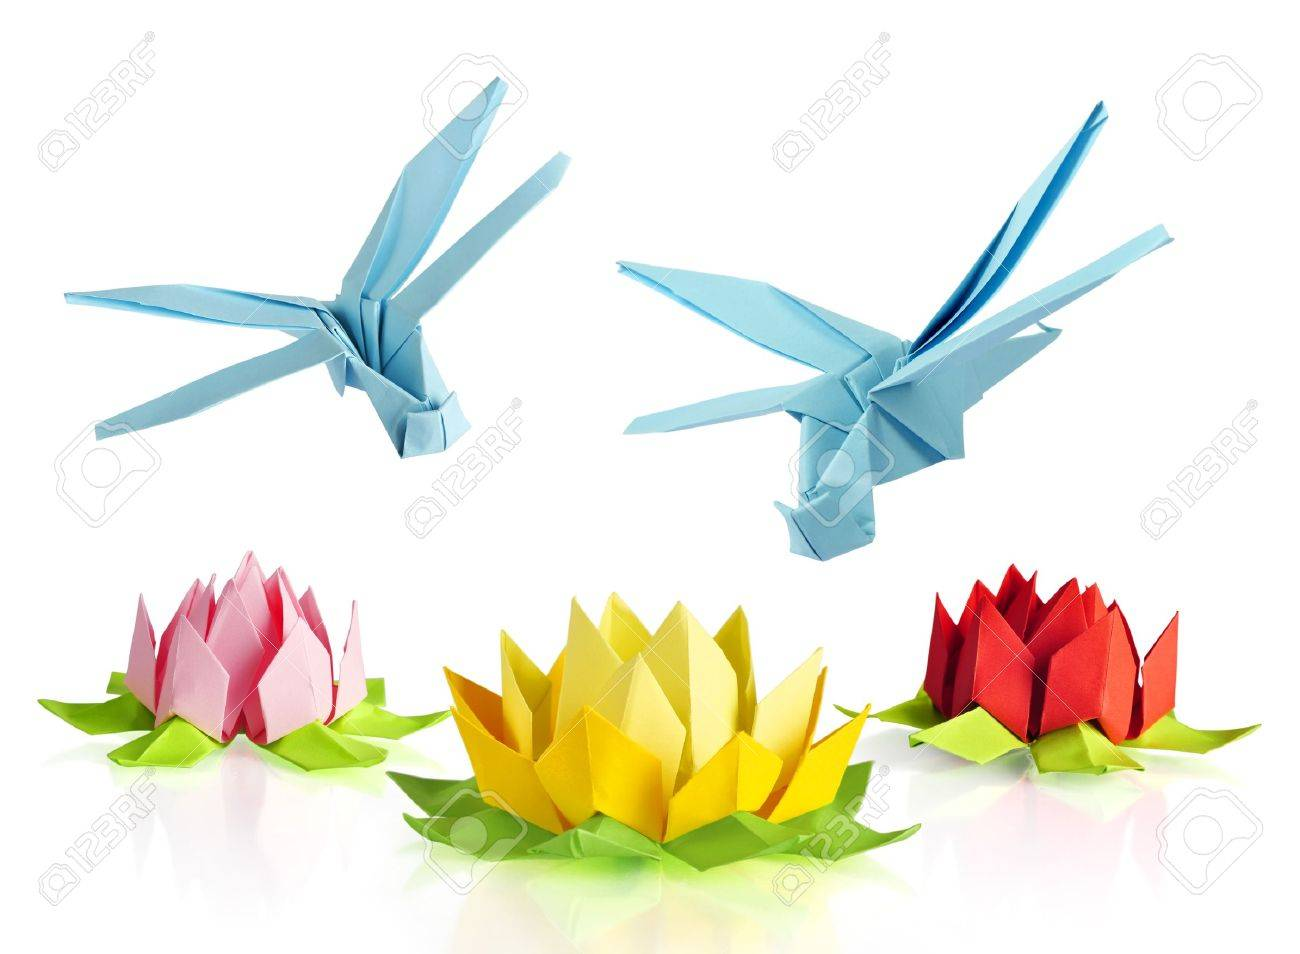 Origami blue dragonfly over flowers lotus over white background origami blue dragonfly over flowers lotus over white background stock photo 18549143 mightylinksfo